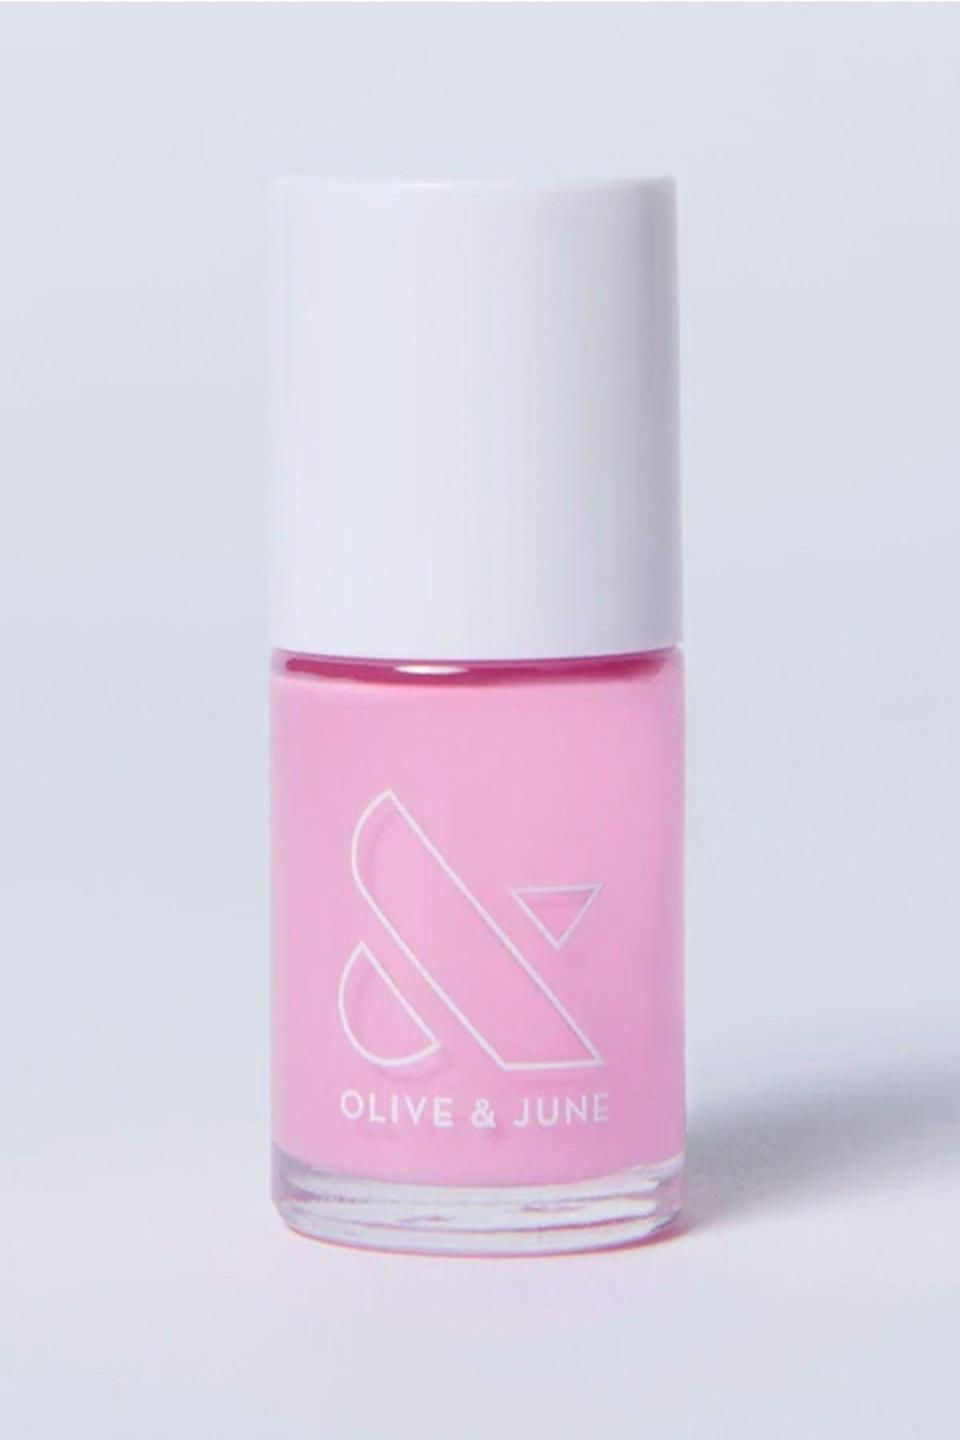 """<p><strong>Olive & June</strong></p><p>oliveandjune.com</p><p><strong>$8.00</strong></p><p><a href=""""https://go.redirectingat.com?id=74968X1596630&url=https%3A%2F%2Foliveandjune.com%2Fcollections%2Fthe-pinks%2Fproducts%2Fjm&sref=https%3A%2F%2Fwww.seventeen.com%2Fbeauty%2Fnails%2Fg2741%2Fbest-spring-nail-colors%2F"""" rel=""""nofollow noopener"""" target=""""_blank"""" data-ylk=""""slk:SHOP NOW"""" class=""""link rapid-noclick-resp"""">SHOP NOW</a></p><p>Upgrade your tired pink nails with this lavender-toned version — it'll remind you of your favorite florals.</p>"""